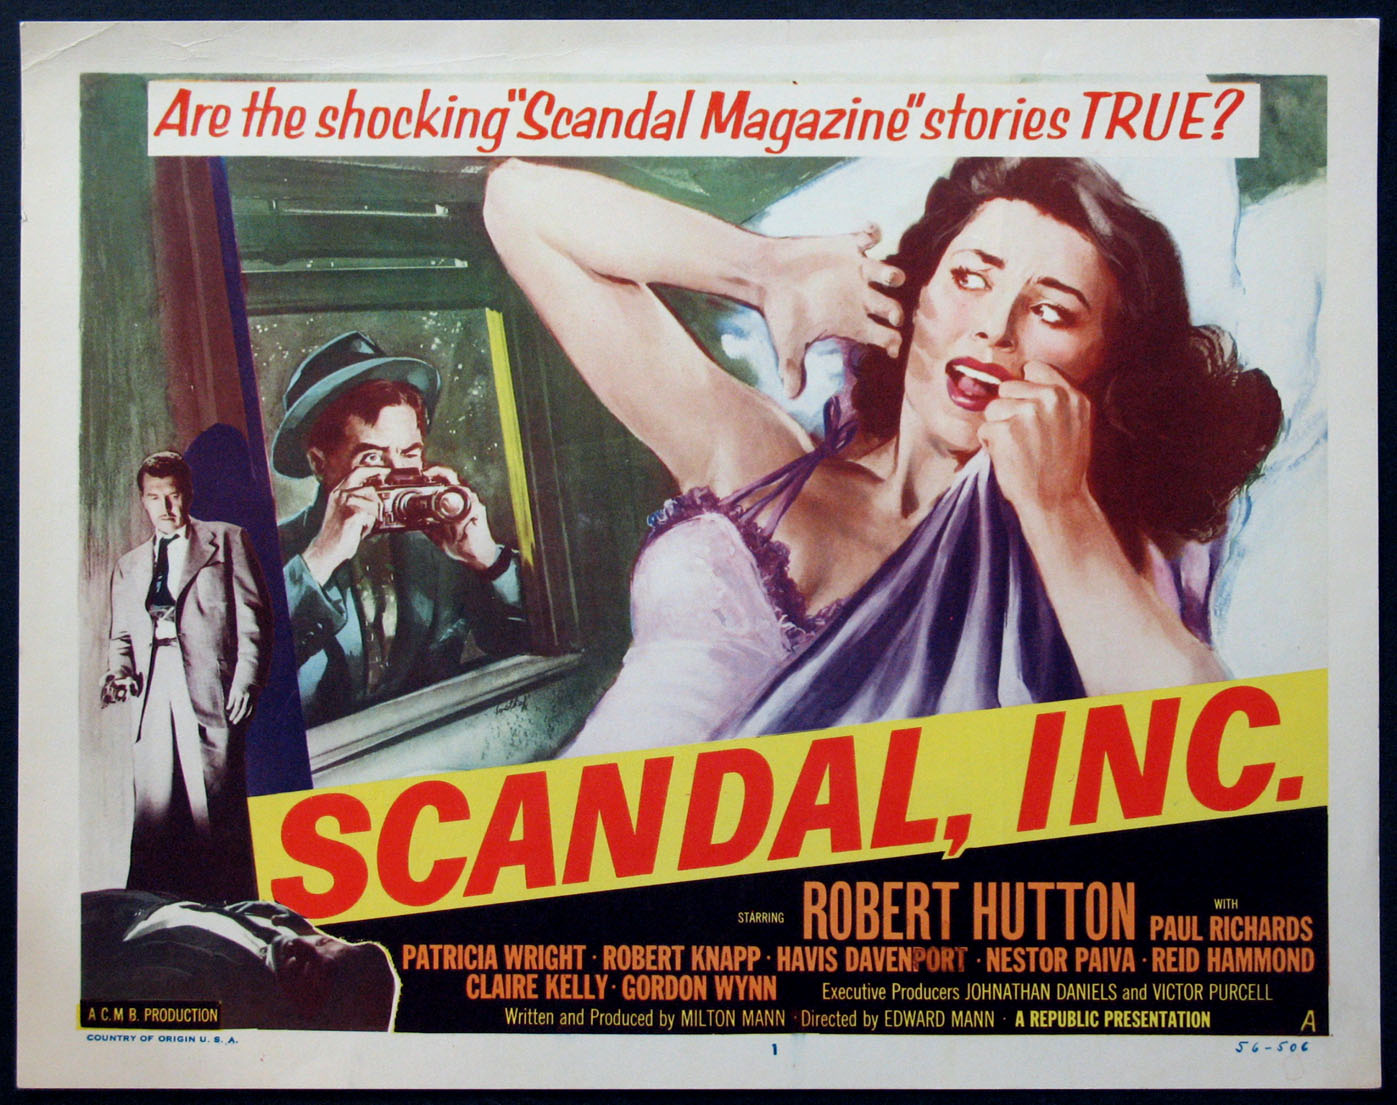 SCANDAL, INC. (Scandal Inc.) @ FilmPosters.com